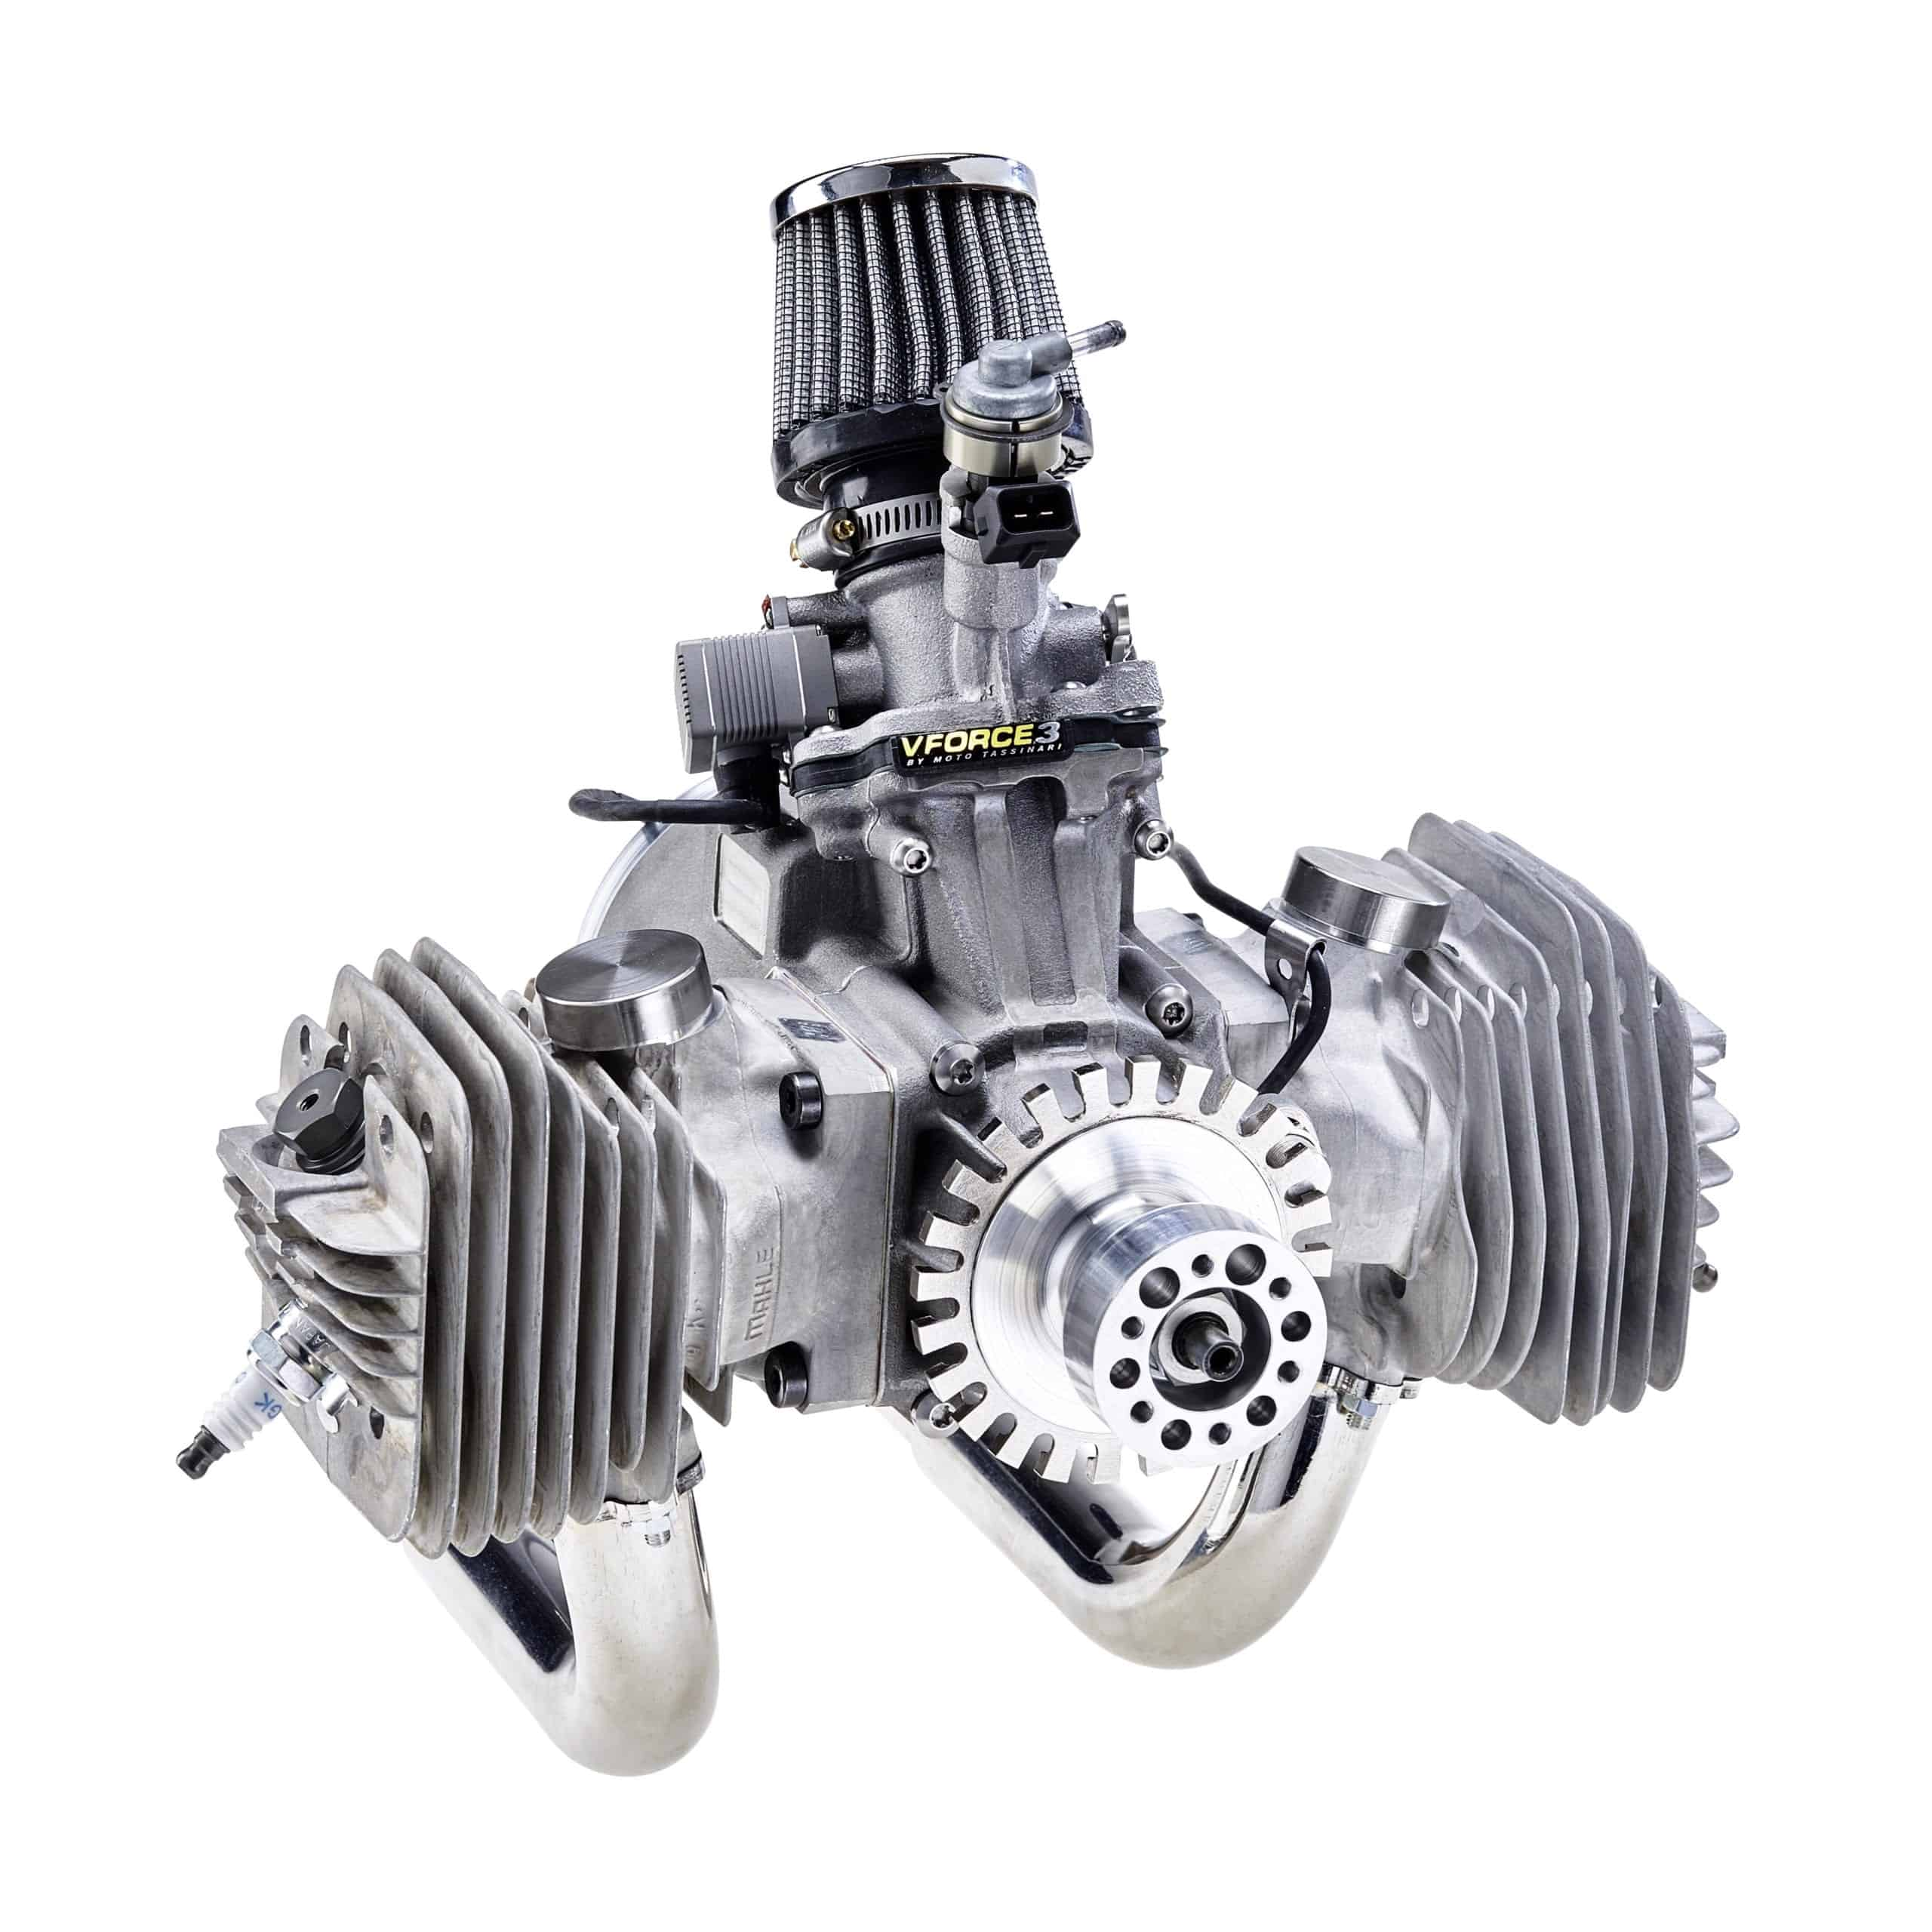 Hirth Motors Unveils New 15hp Cots Uav Engine Unmanned